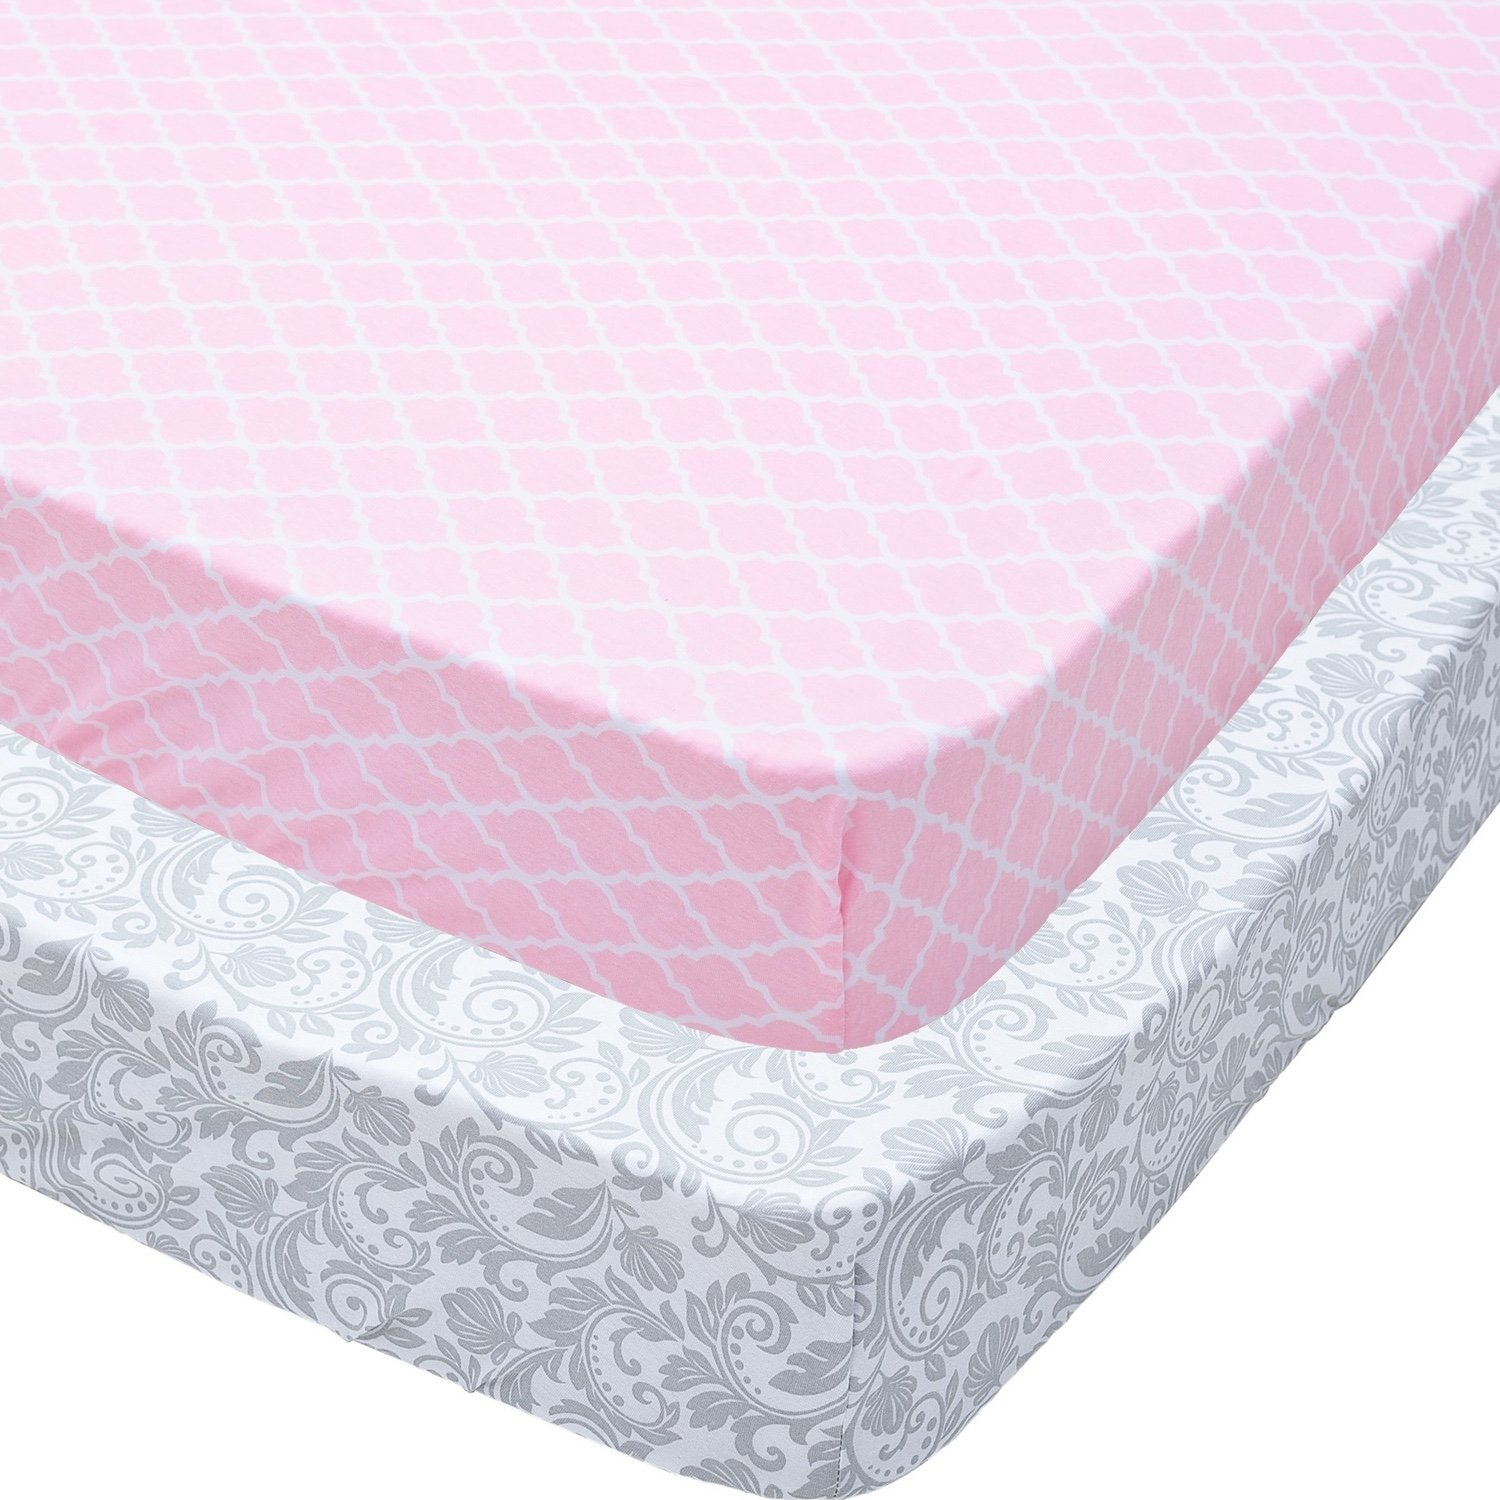 Playard Sheets, 2 Pack Pink Quatrefoil & Gray Floral Fitted Soft Jersey Cotton